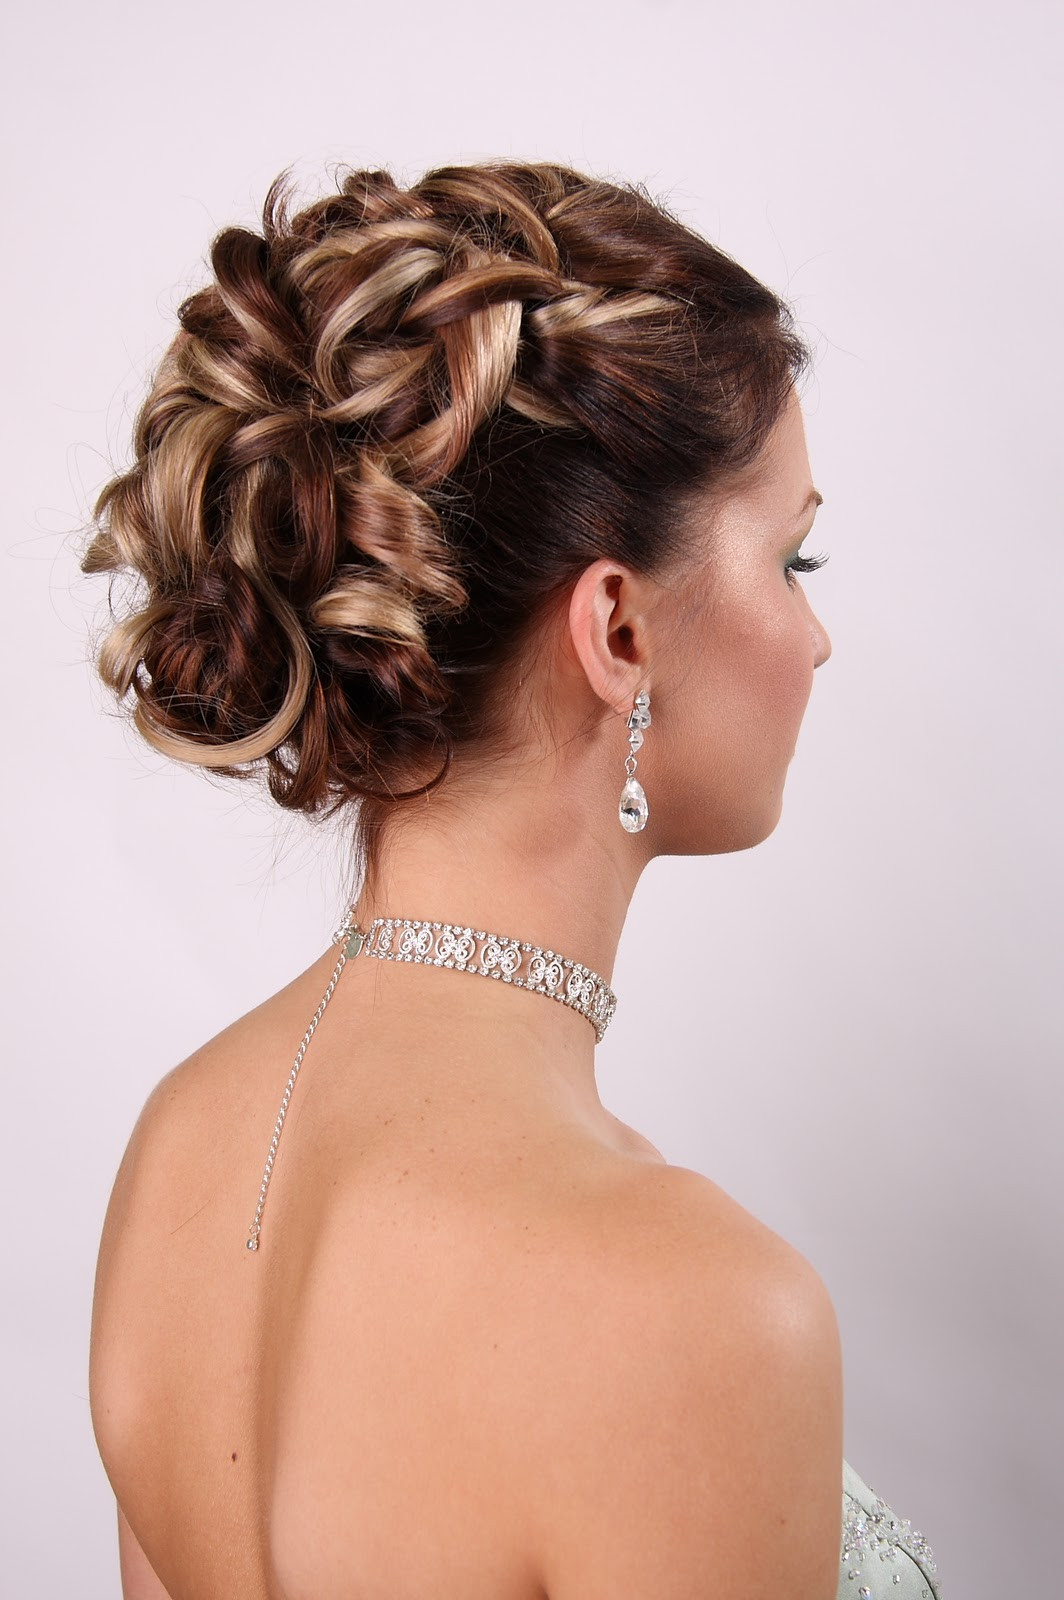 Bridesmaid Hairstyles For Thin Hair  50 Hairstyles For Weddings To Look Amazingly Special